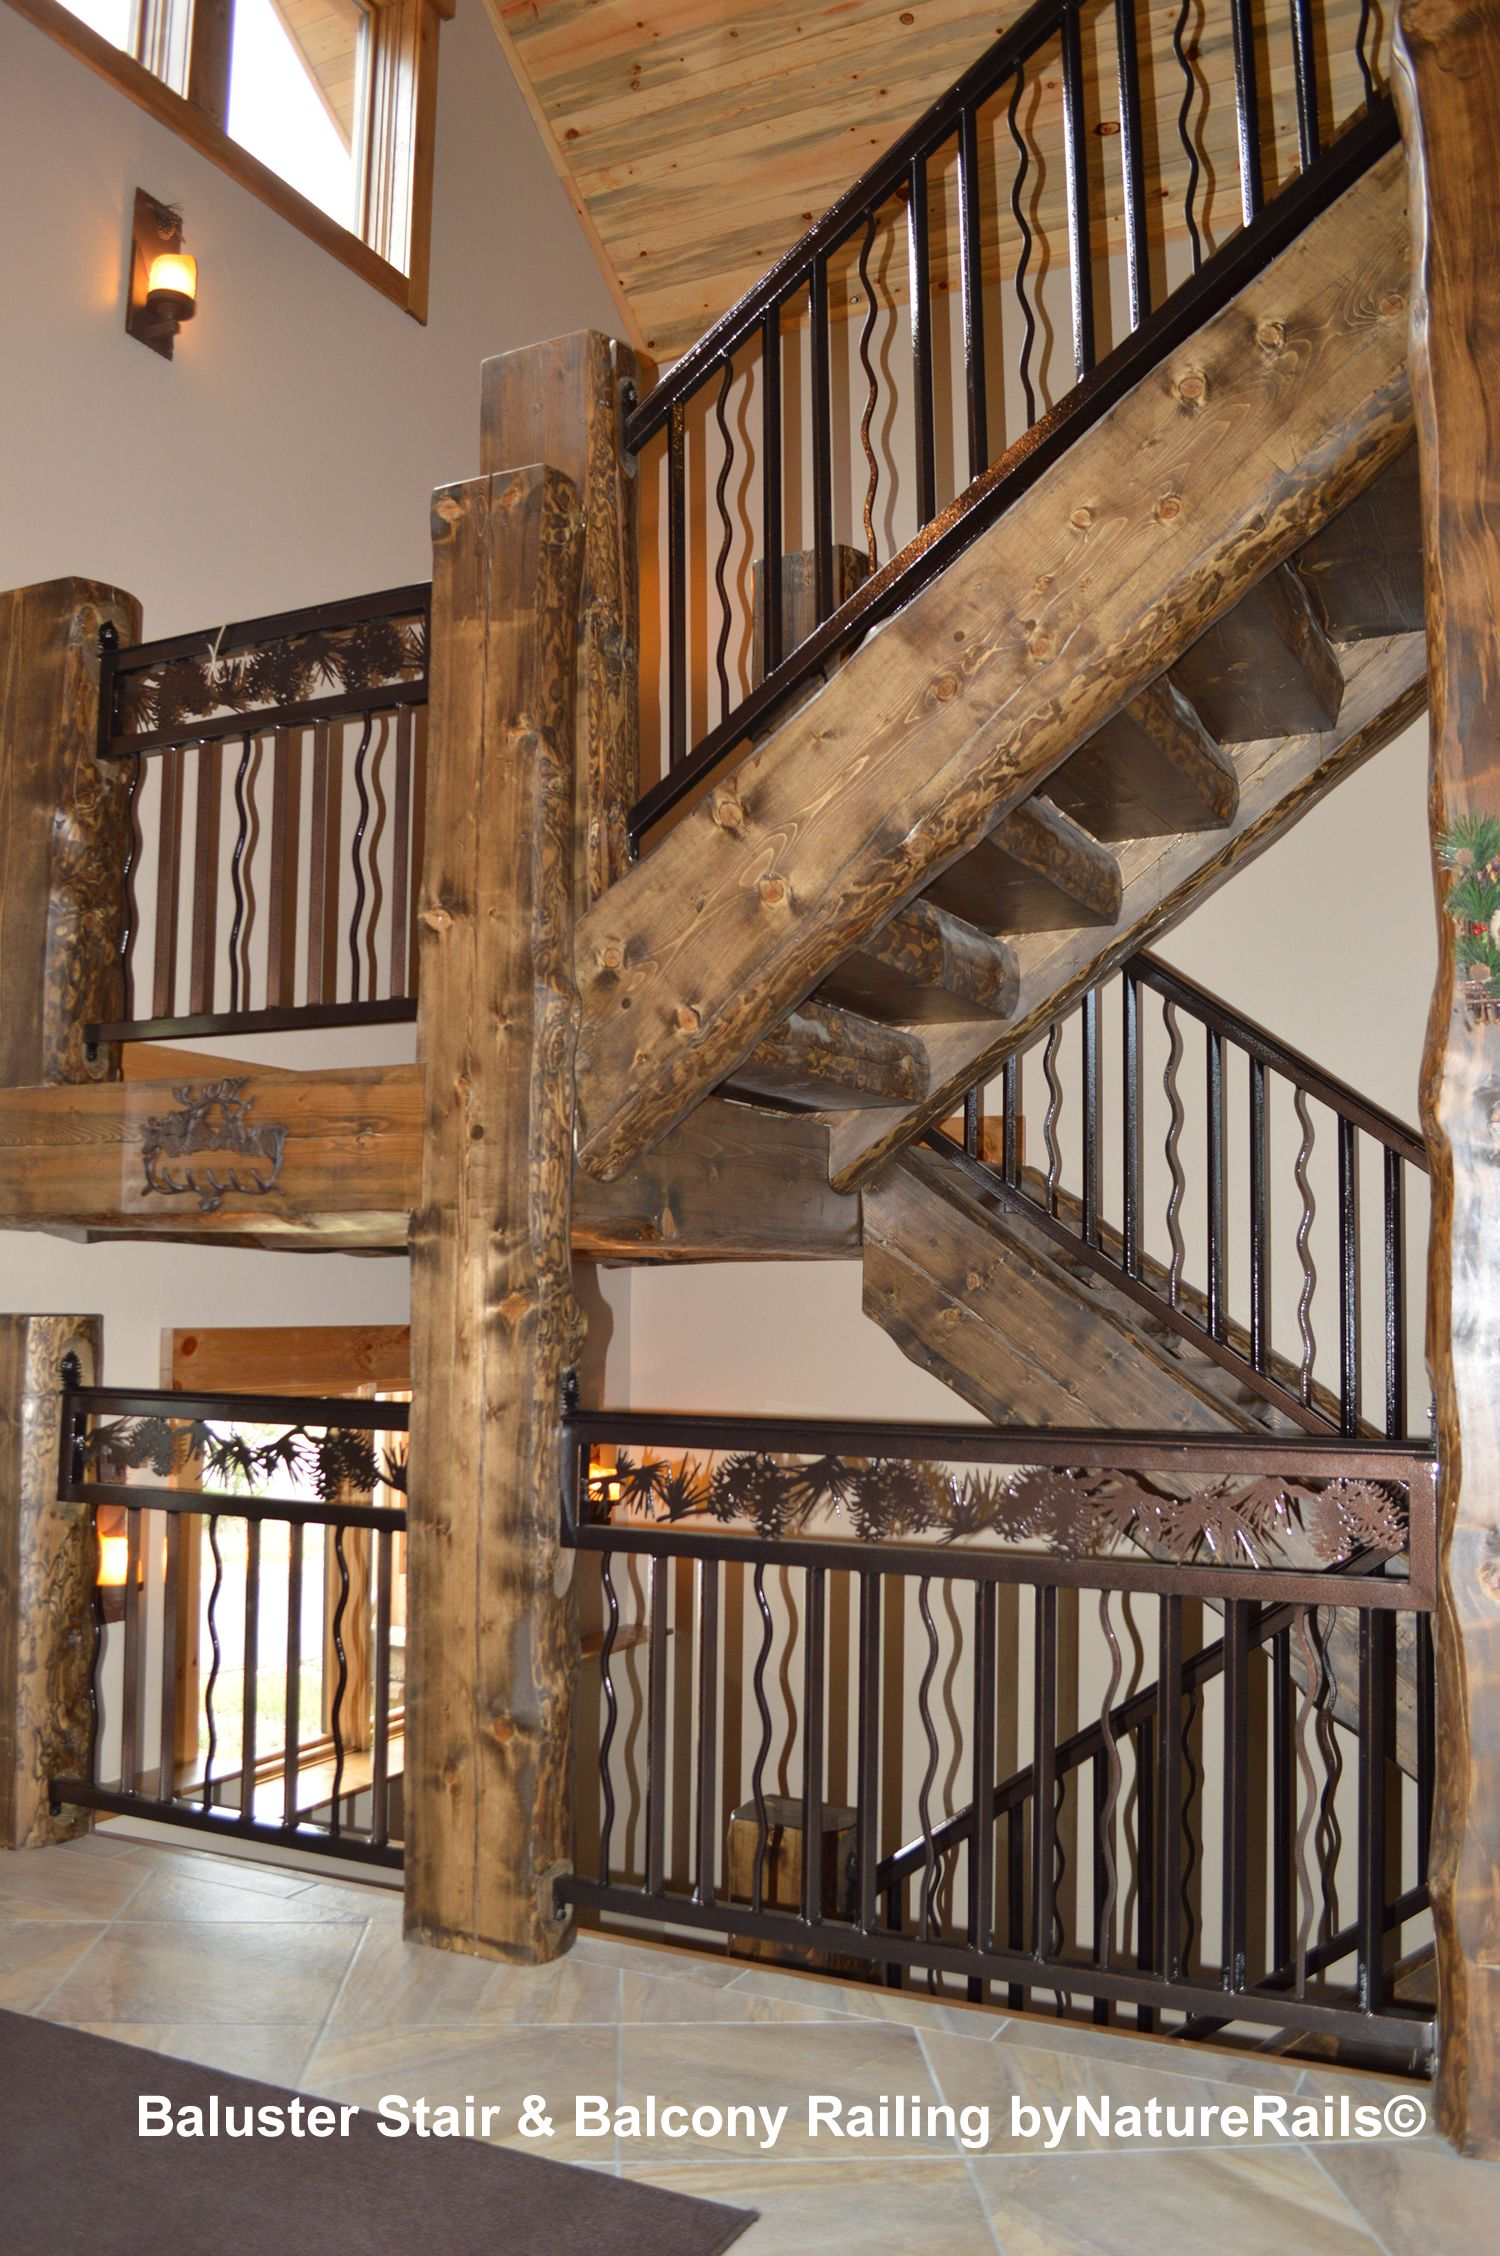 Best Decorative Baluster Railing With Pine Cone Border Over A 400 x 300